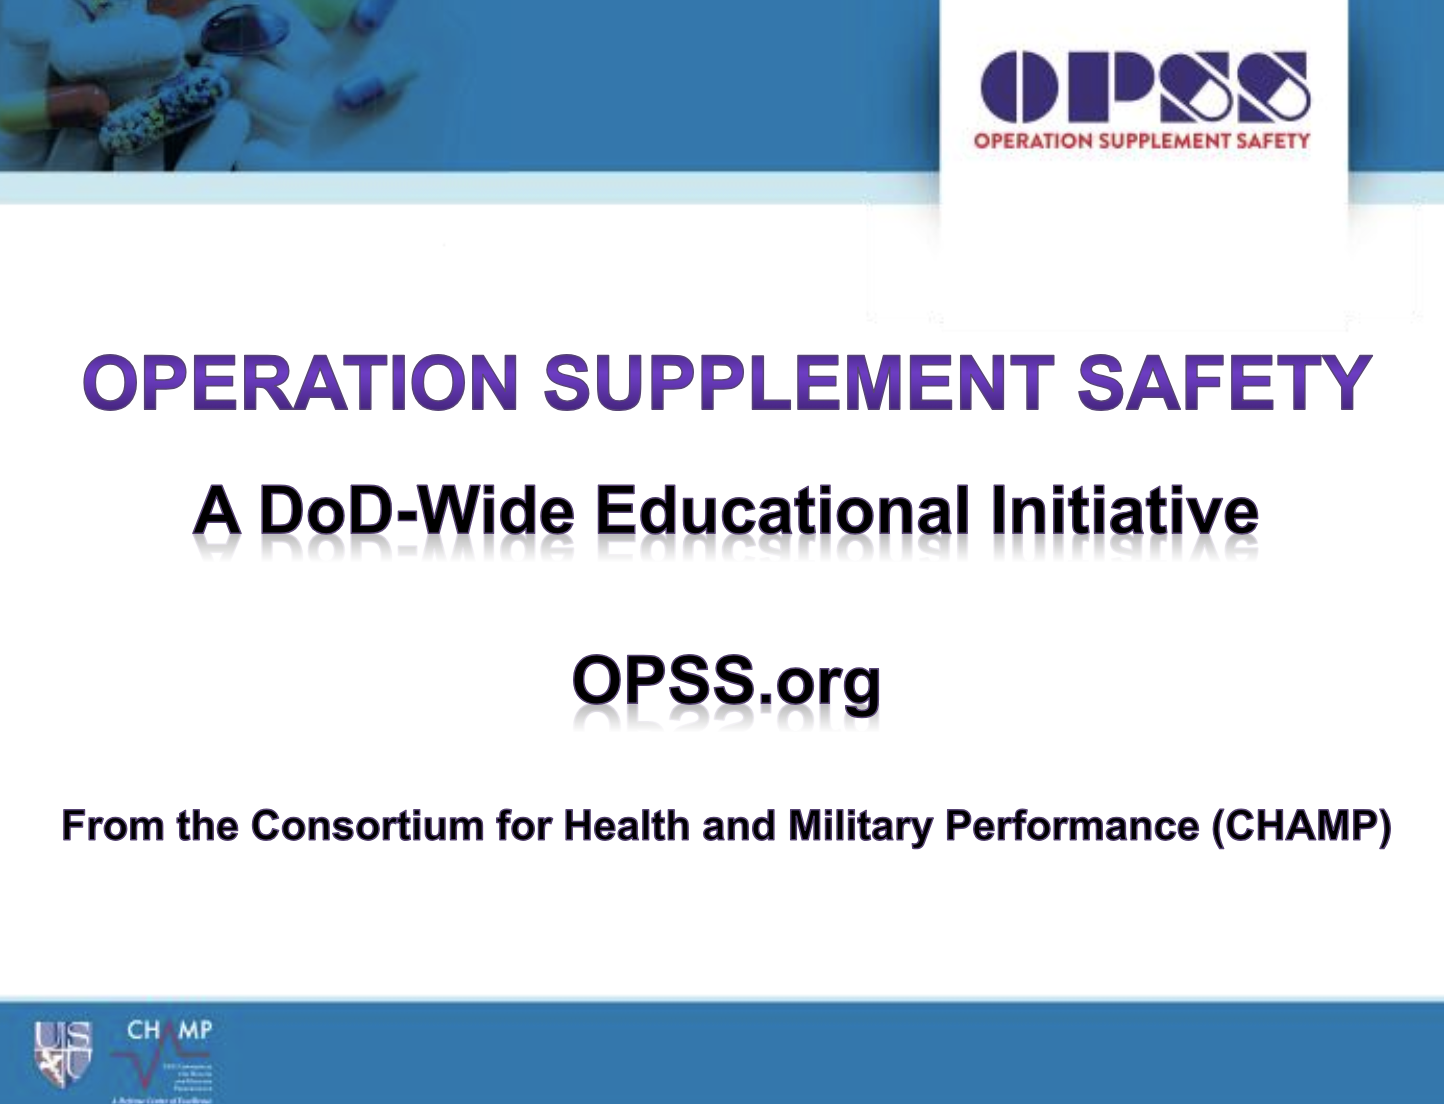 OPSS short presentation slides for Warfighters